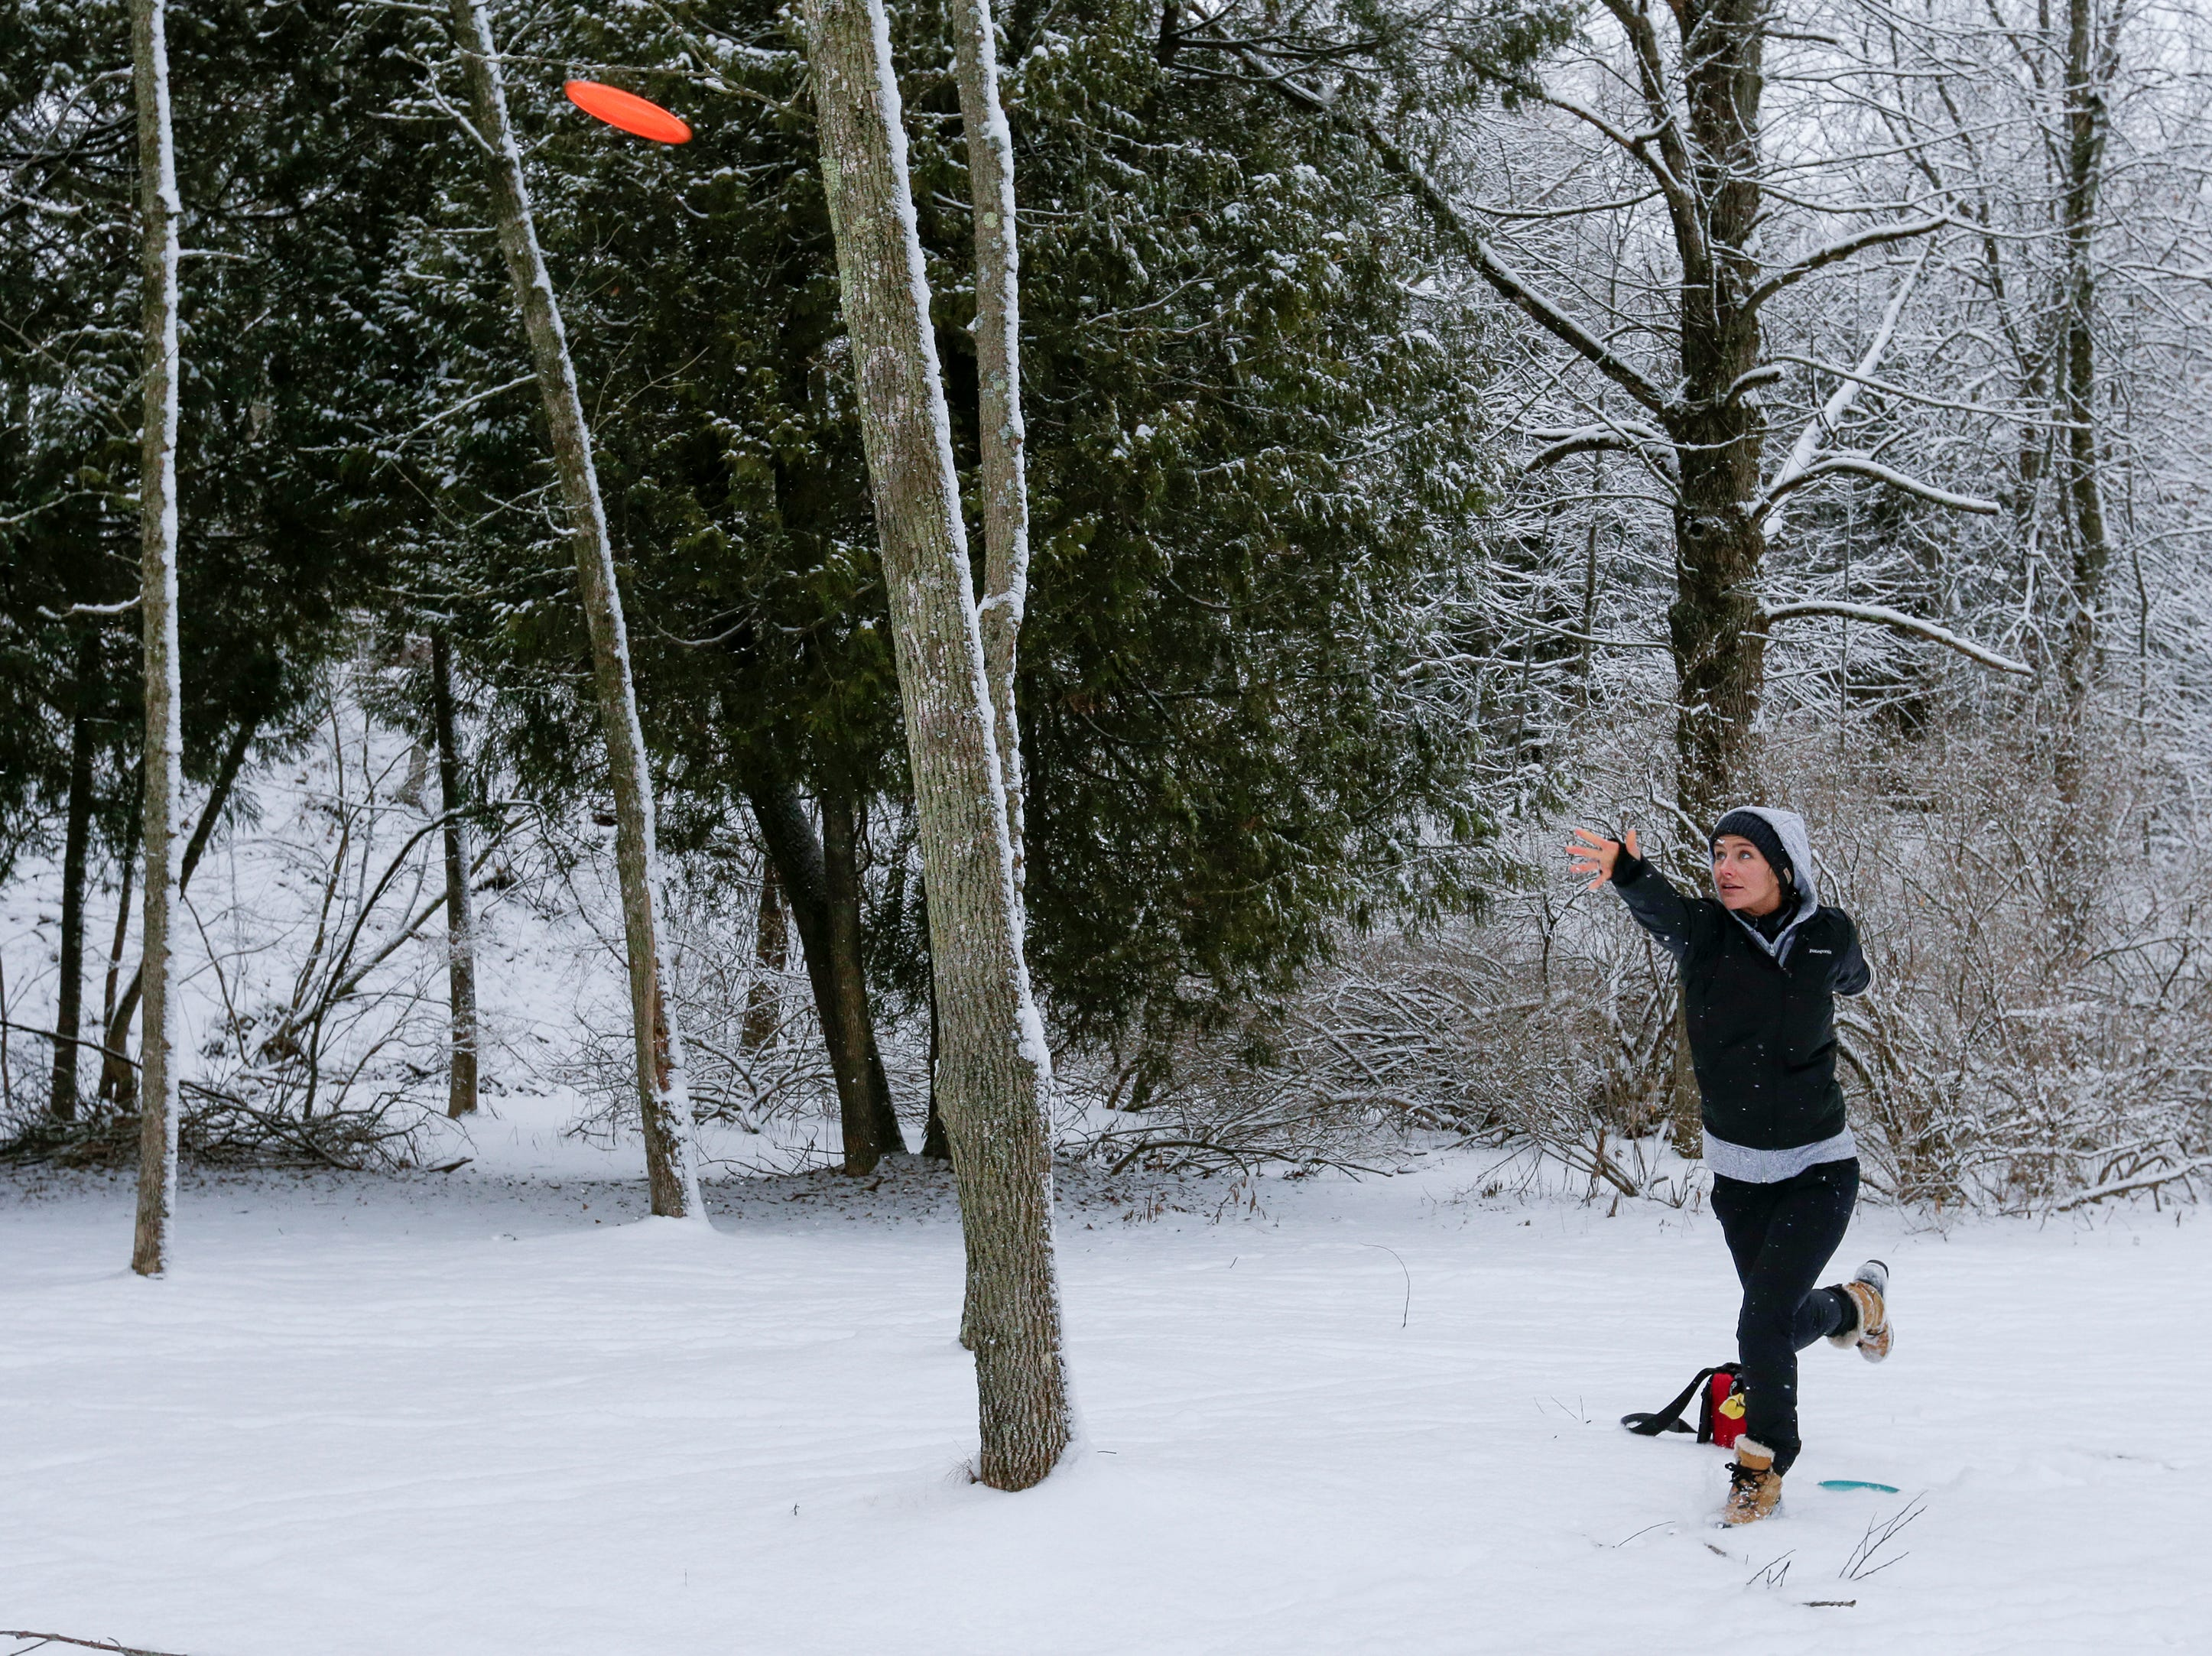 Elizabeth Emmeneger, of Milwaukee, plays a round of disc golf in the snow at Silver Creek Park Wednesday, January 2, 2019, in Manitowoc, Wis. Joshua Clark/USA TODAY NETWORK-Wisconsin